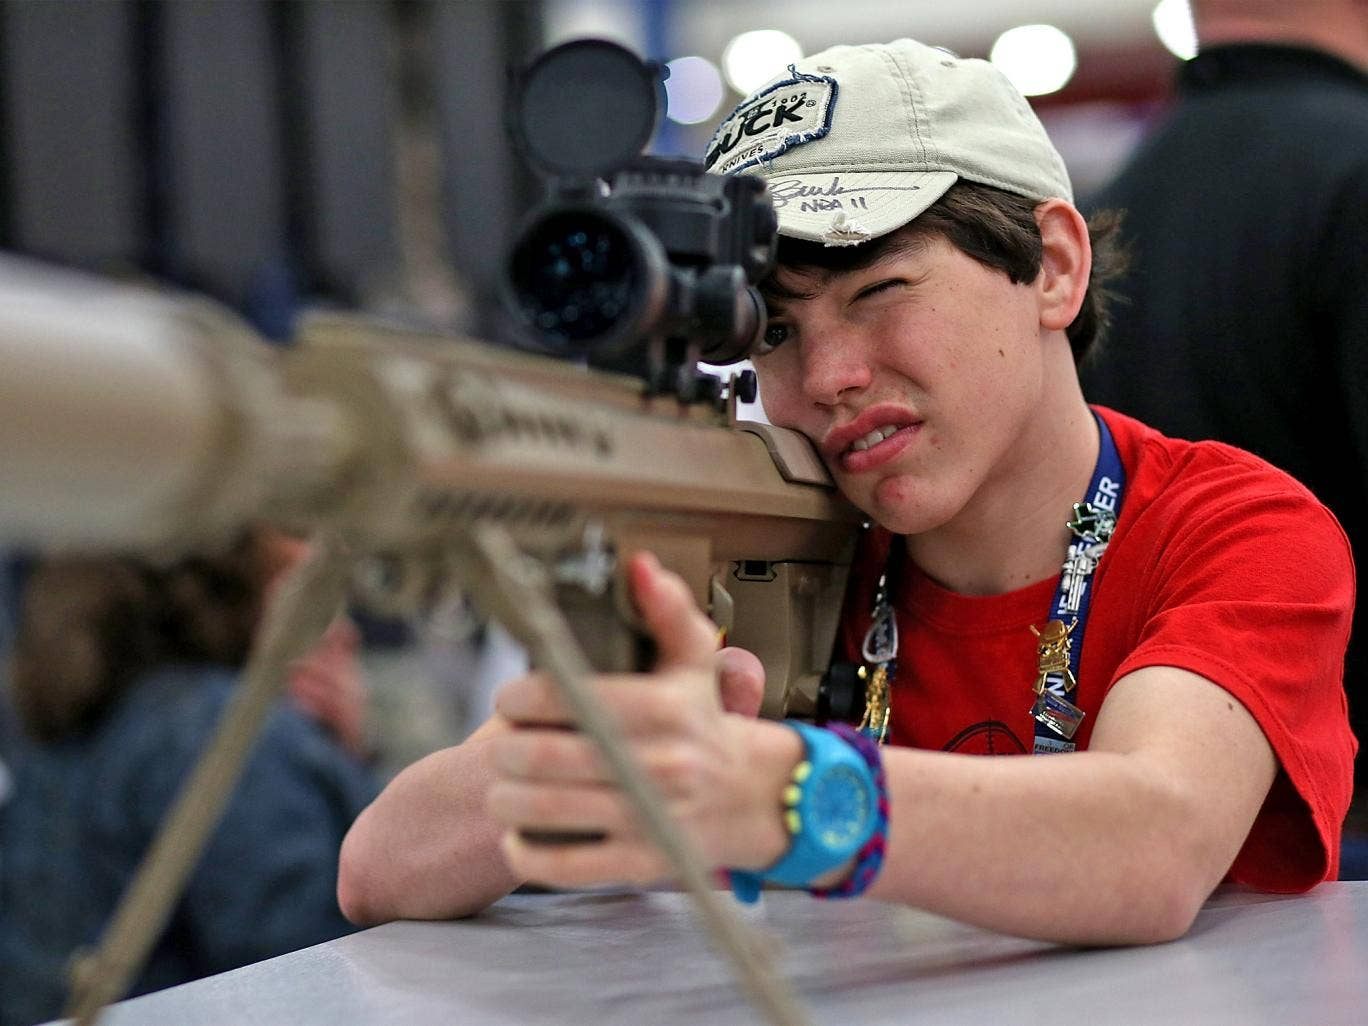 A young boy inspects a high-power sniper rifle at the 2013 NRA annual show